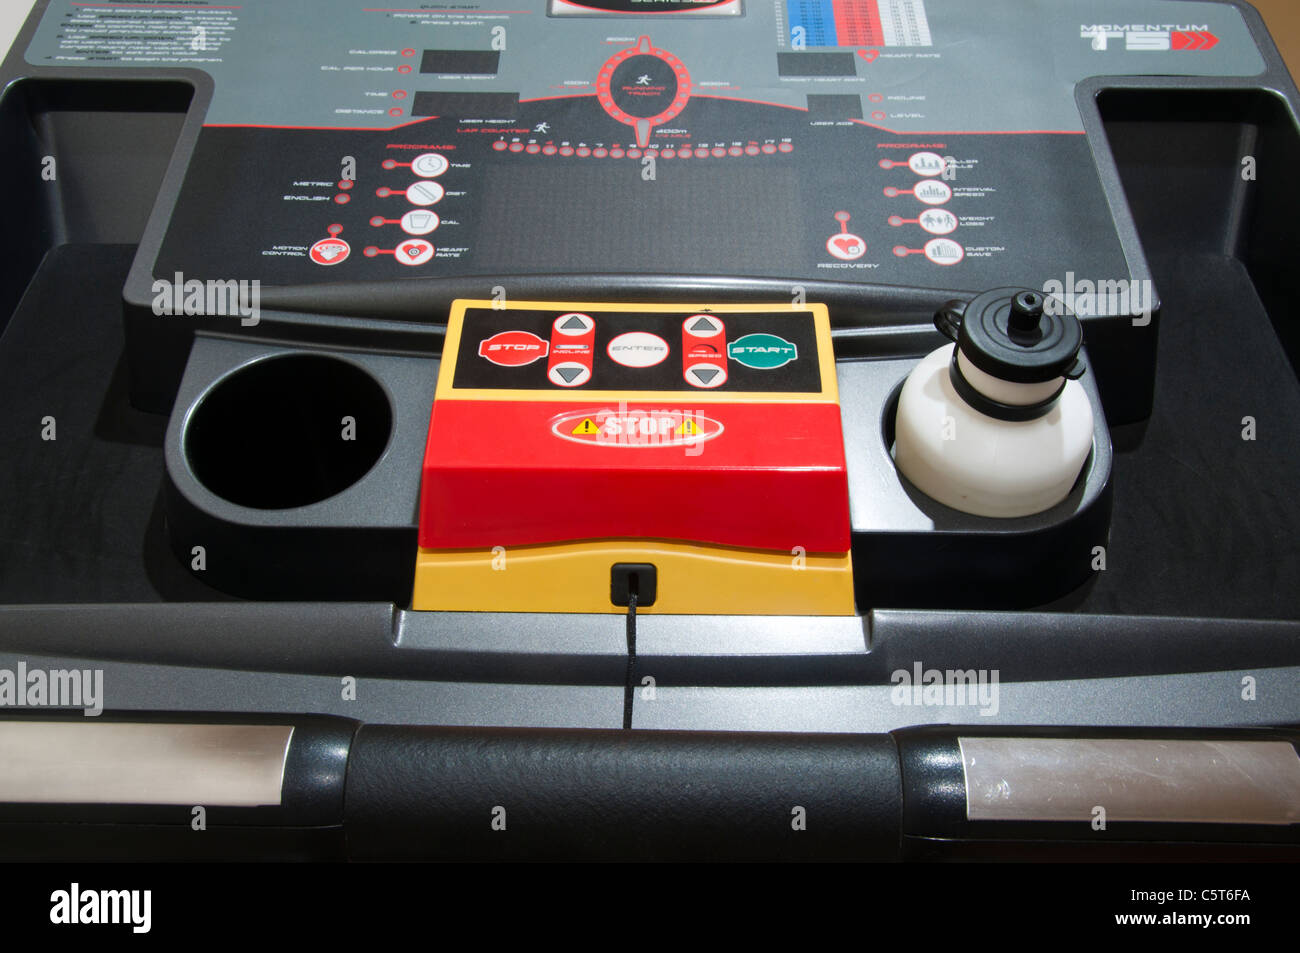 Controls and dials on treadmill - Stock Image